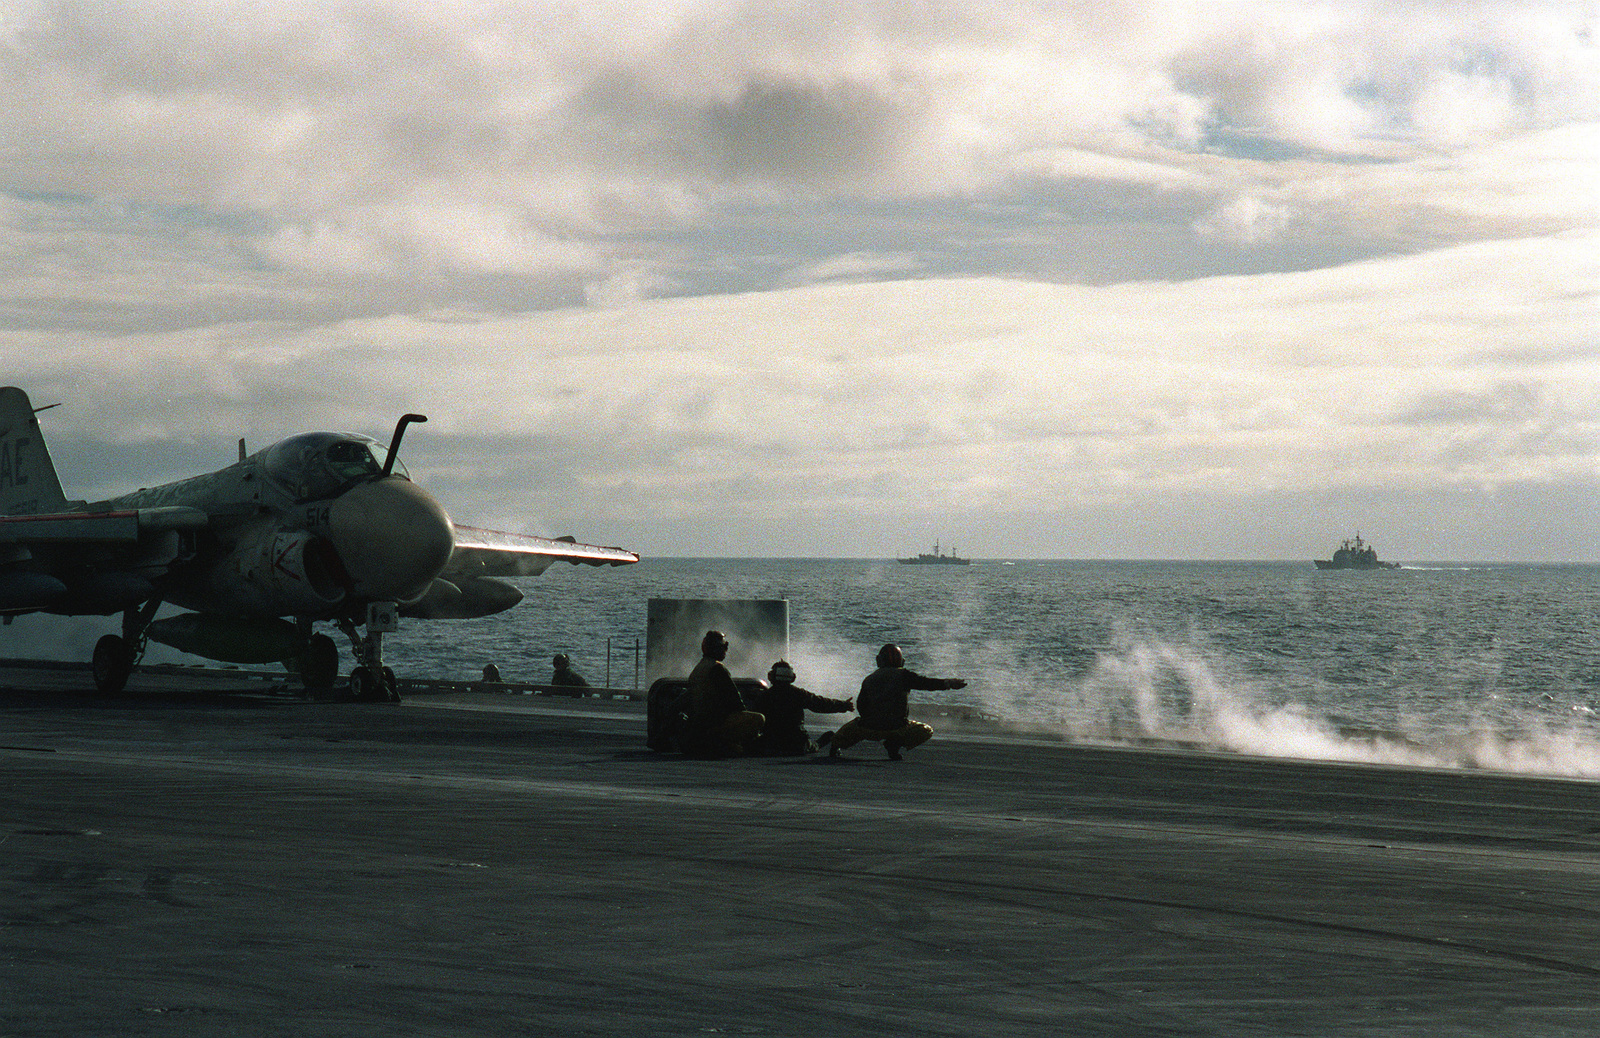 Steam rises from a catapult as an A-6E Intruder aircraft is prepared for launch from the aircraft carrier USS Forrestal (CV-59) during exercise Team Work '88